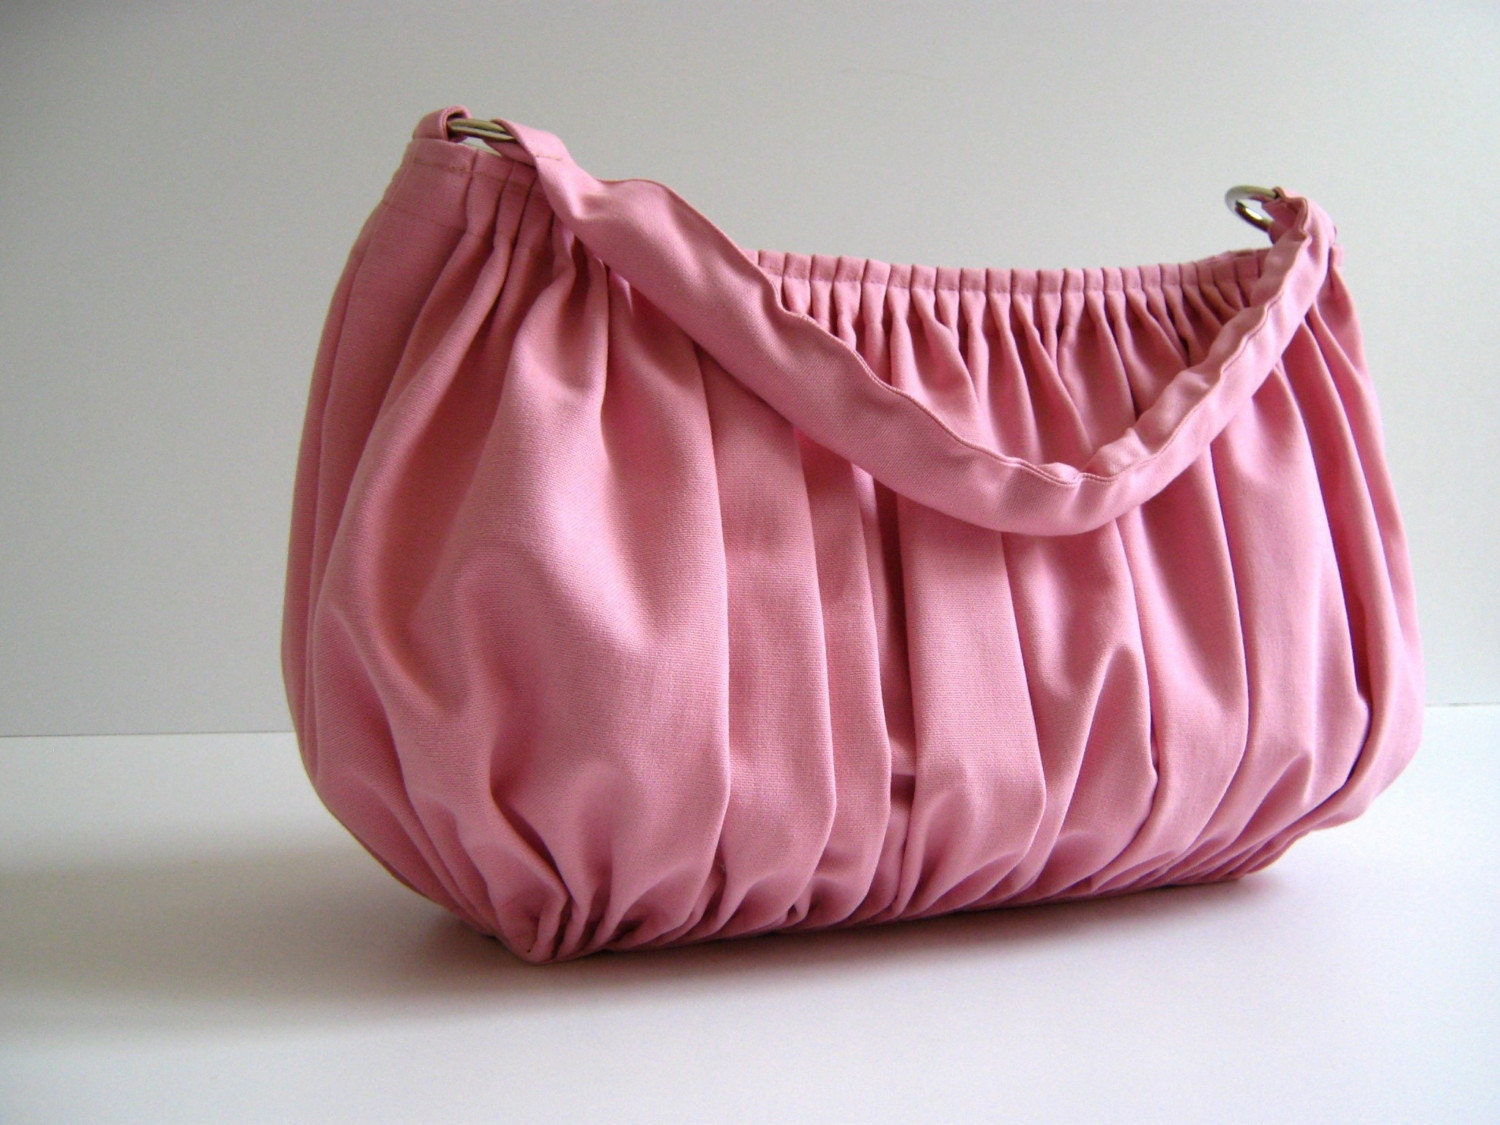 NEW Bella in Bbay Pink --the drapery bag, so chic, large and elegant everyday purse with zippered closure and single strap--